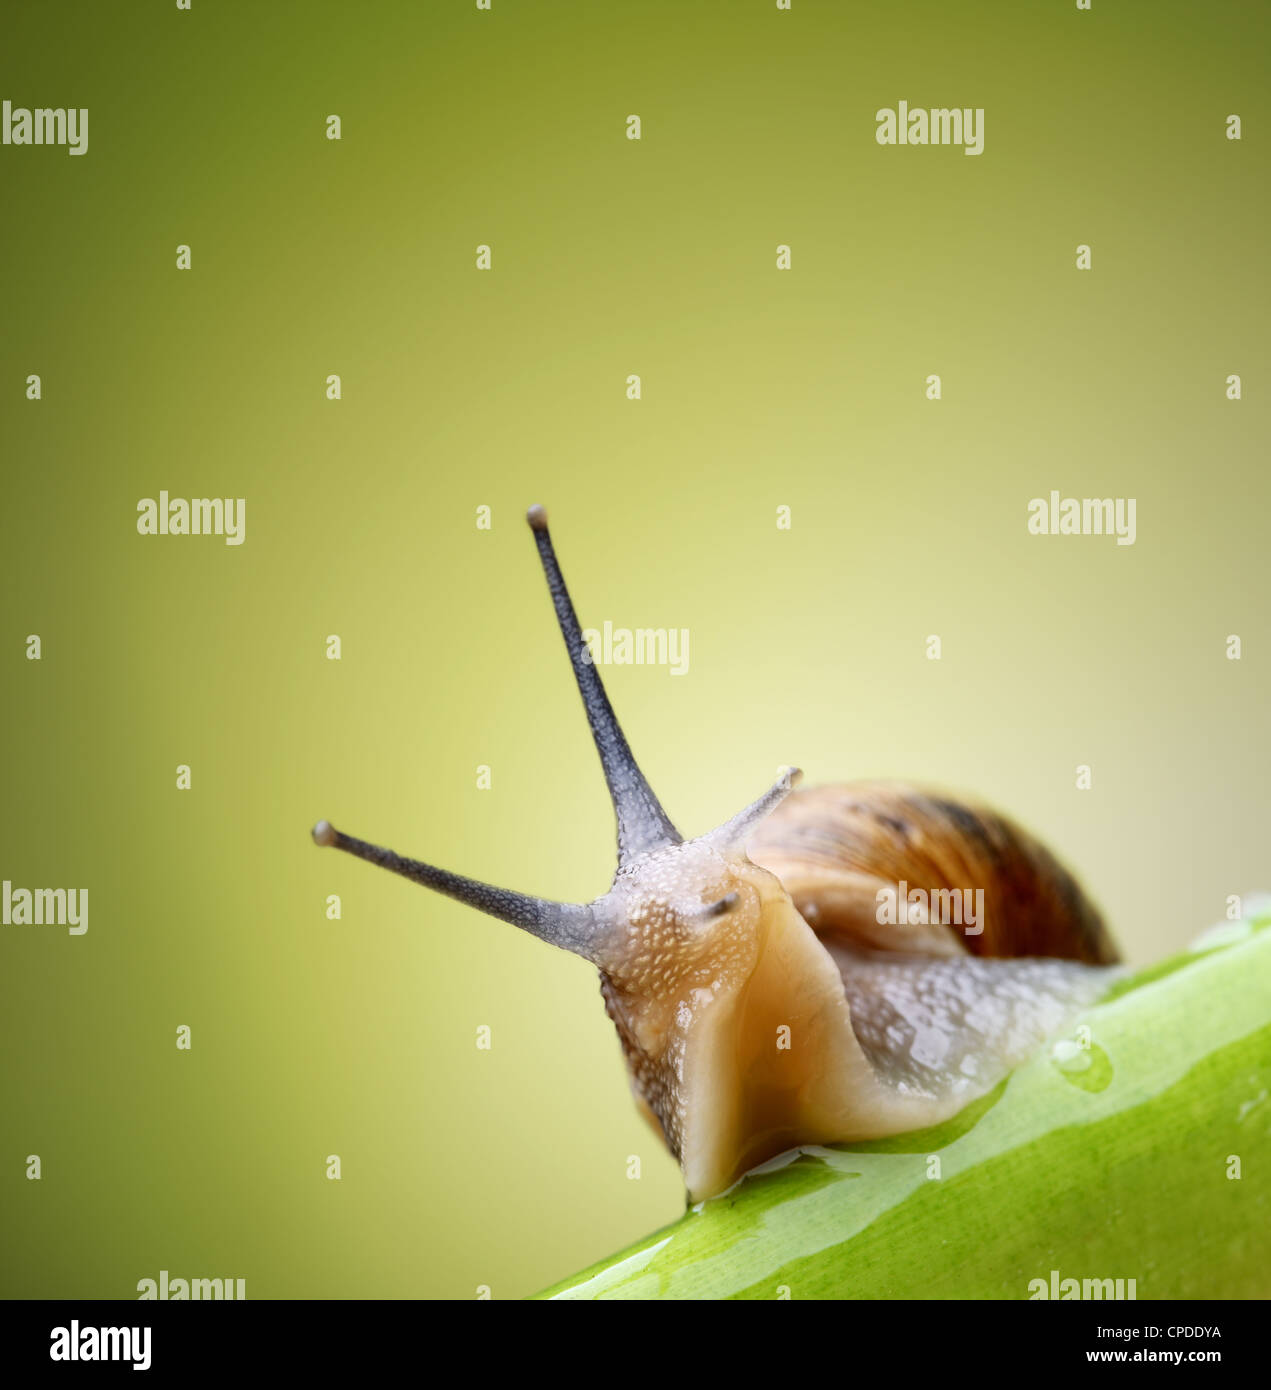 Common garden snail crawling on green stem of plant - Stock Image